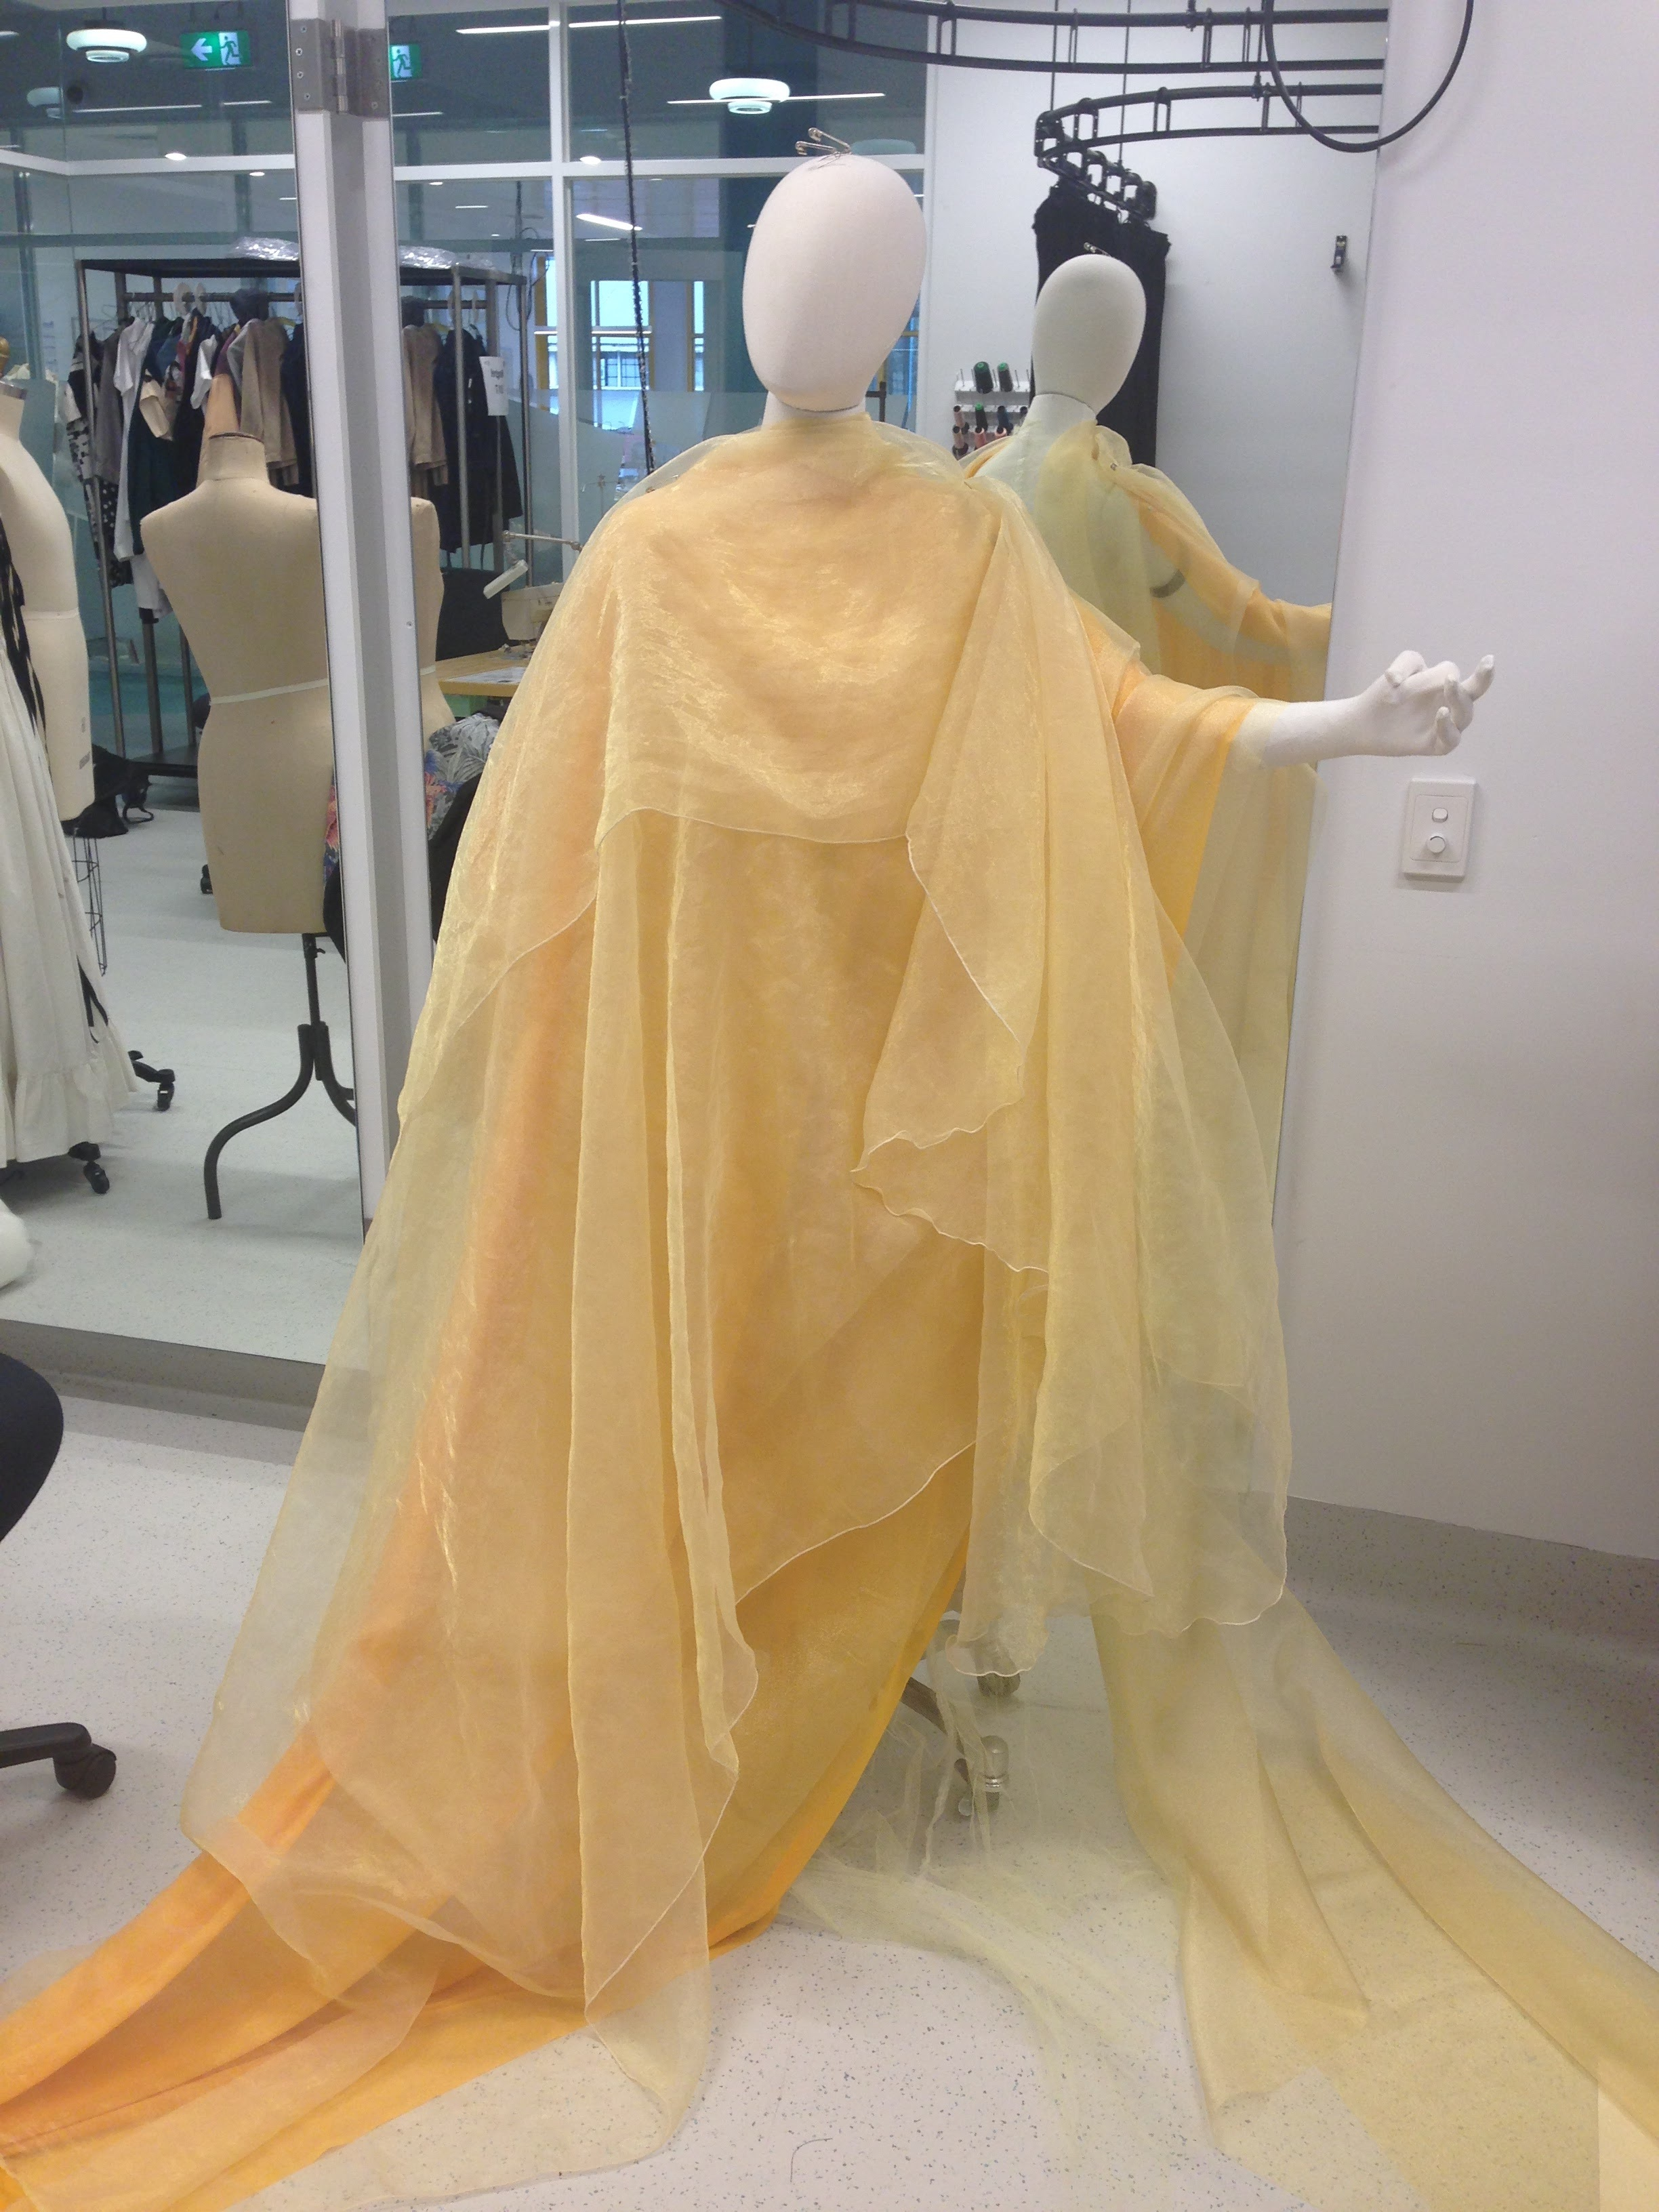 Draping some interesting layers